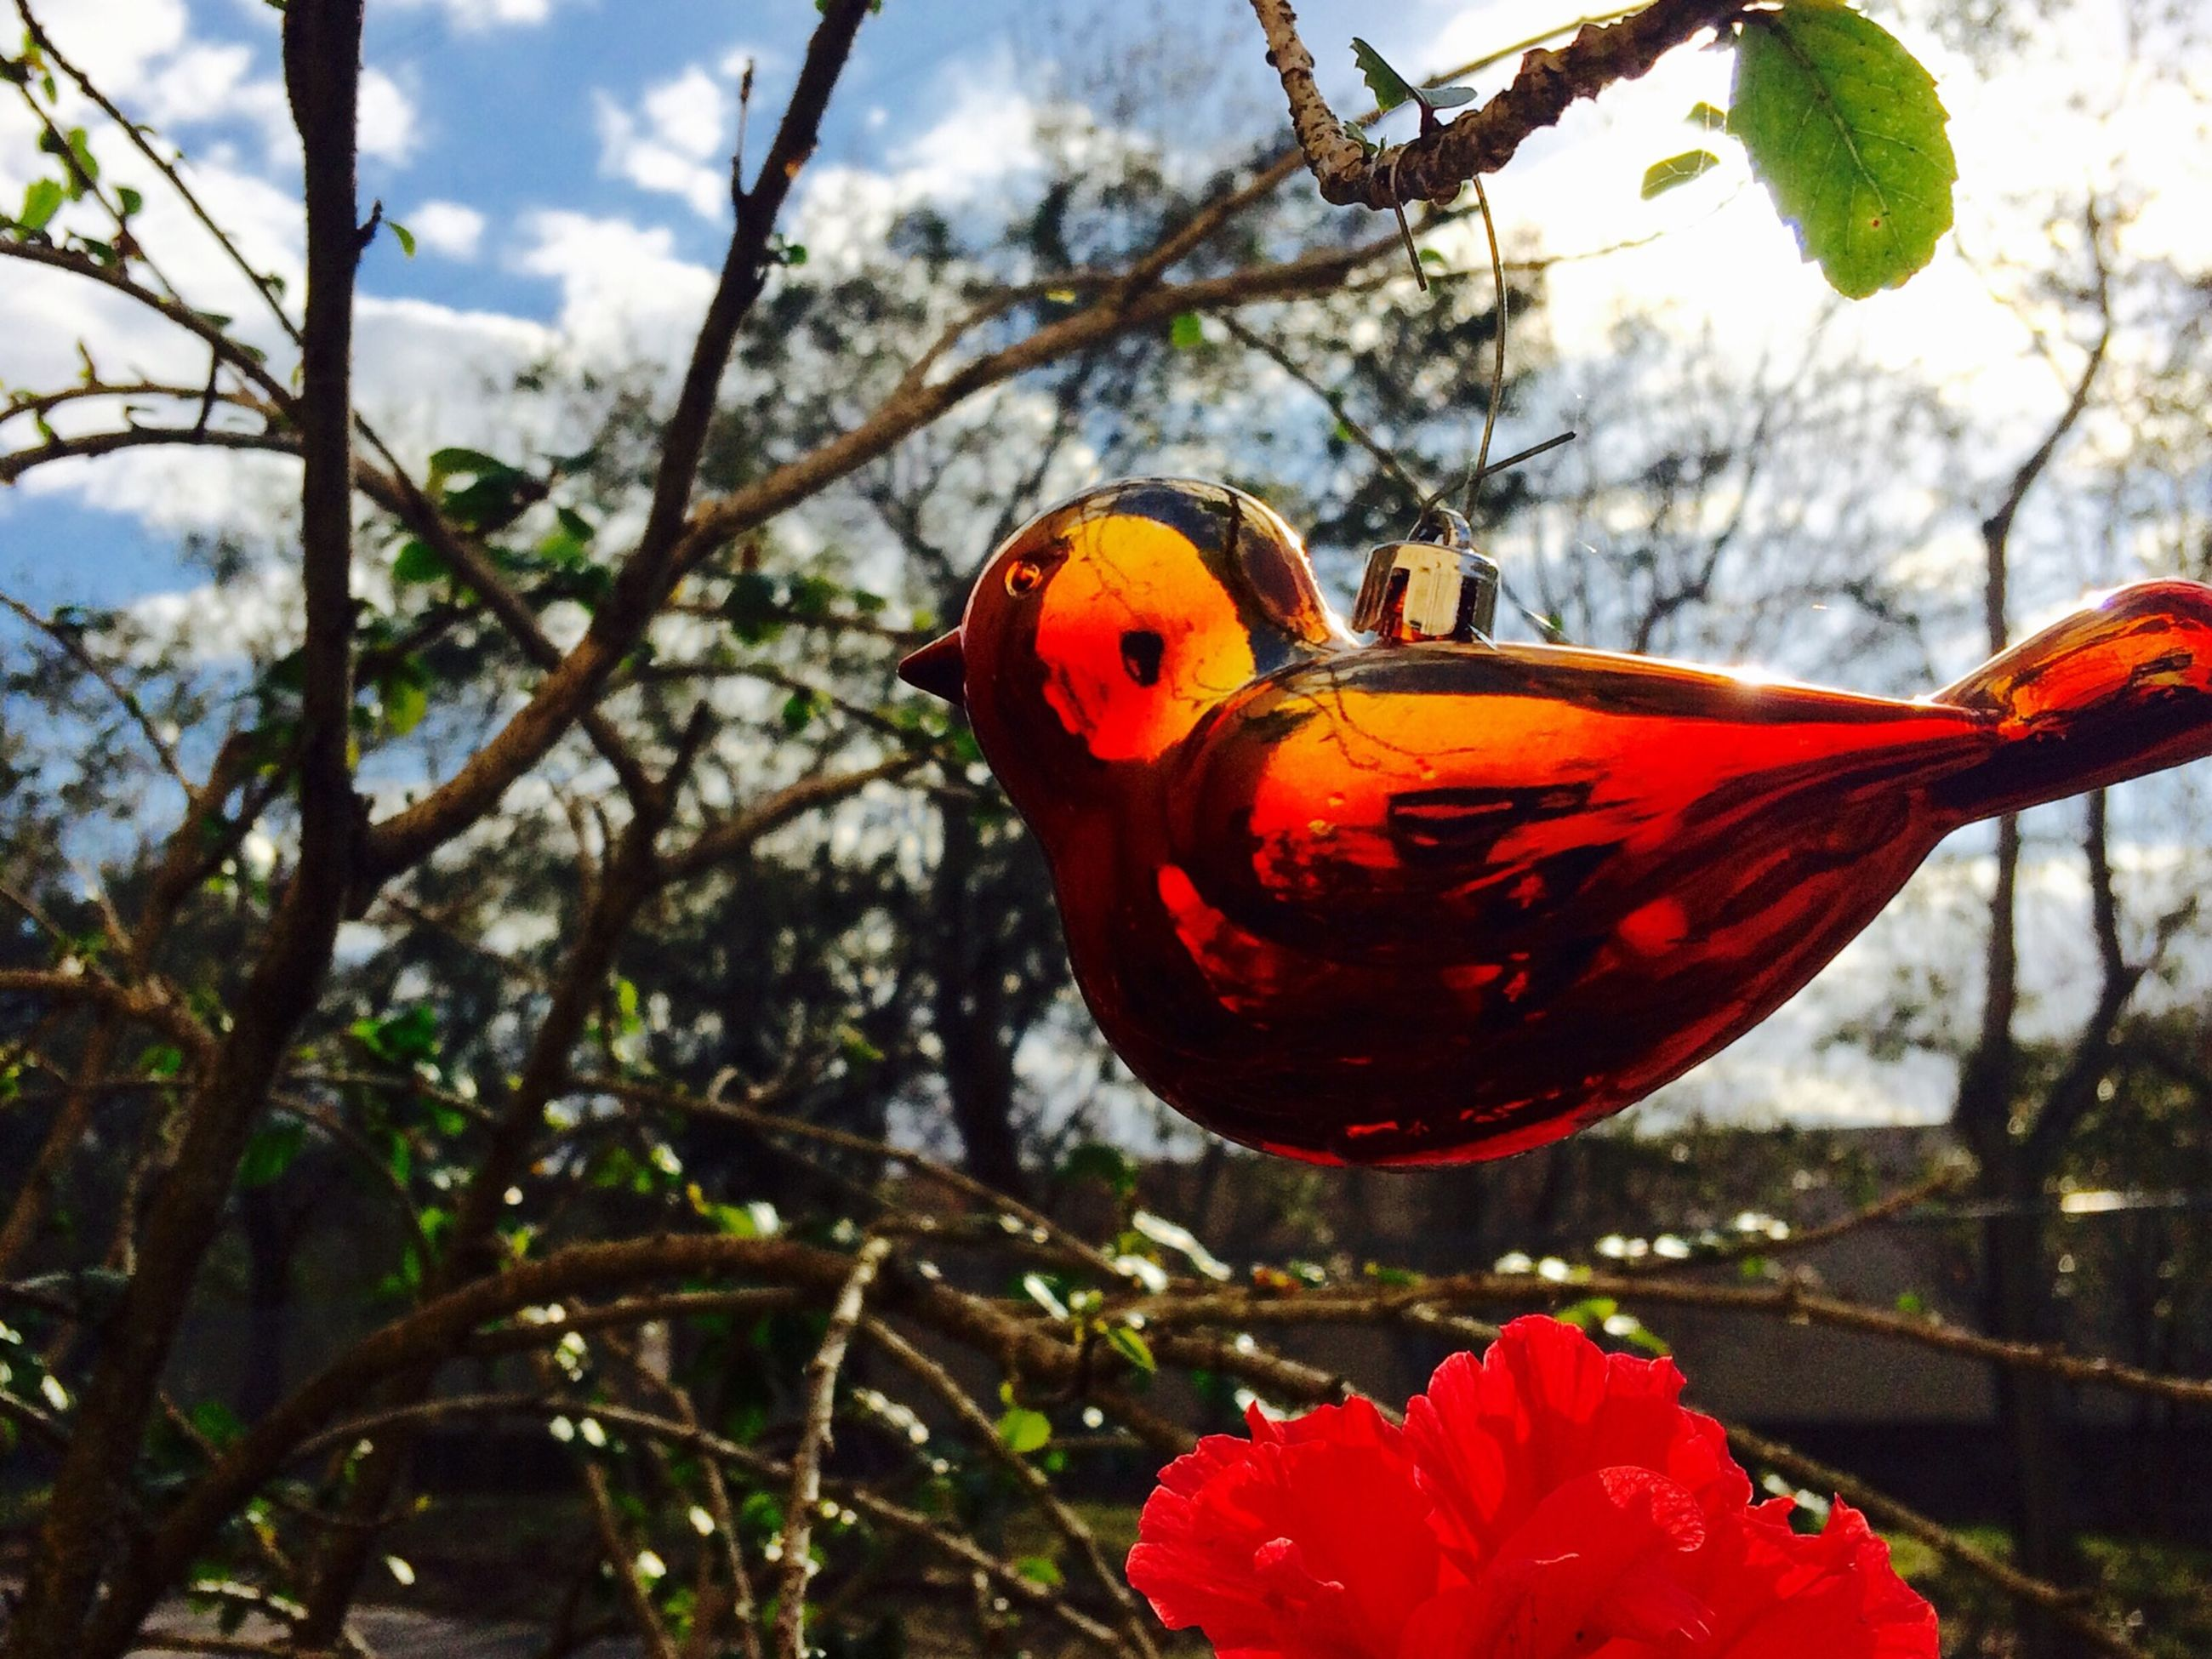 focus on foreground, flower, red, close-up, plant, growth, nature, branch, tree, beauty in nature, fragility, day, freshness, orange color, outdoors, no people, leaf, one animal, stem, animals in the wild